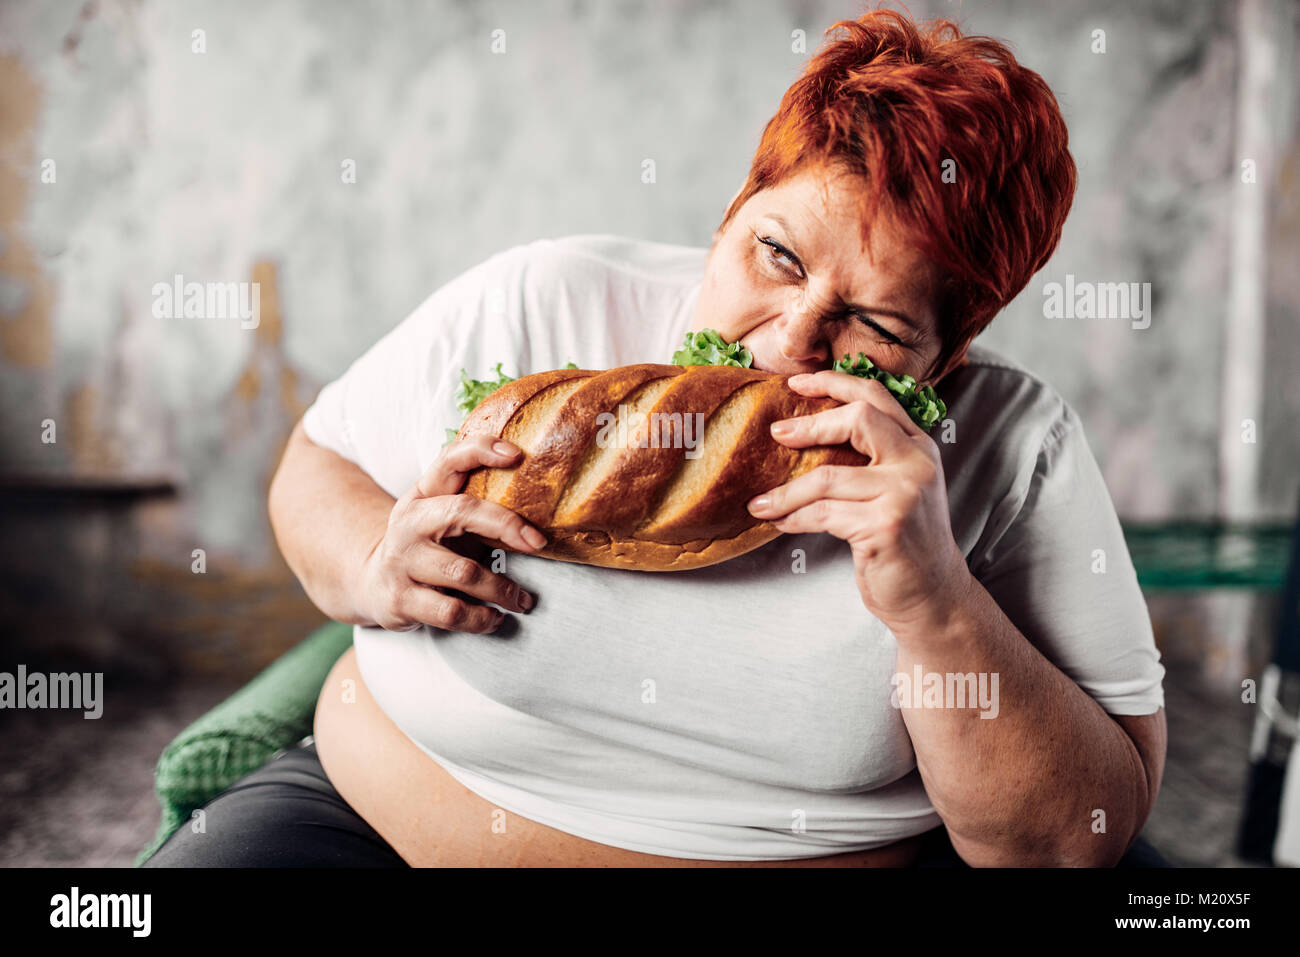 Fat woman eats sandwich, overweight and bulimic. Unhealthy lifestyle. Obesity - Stock Image